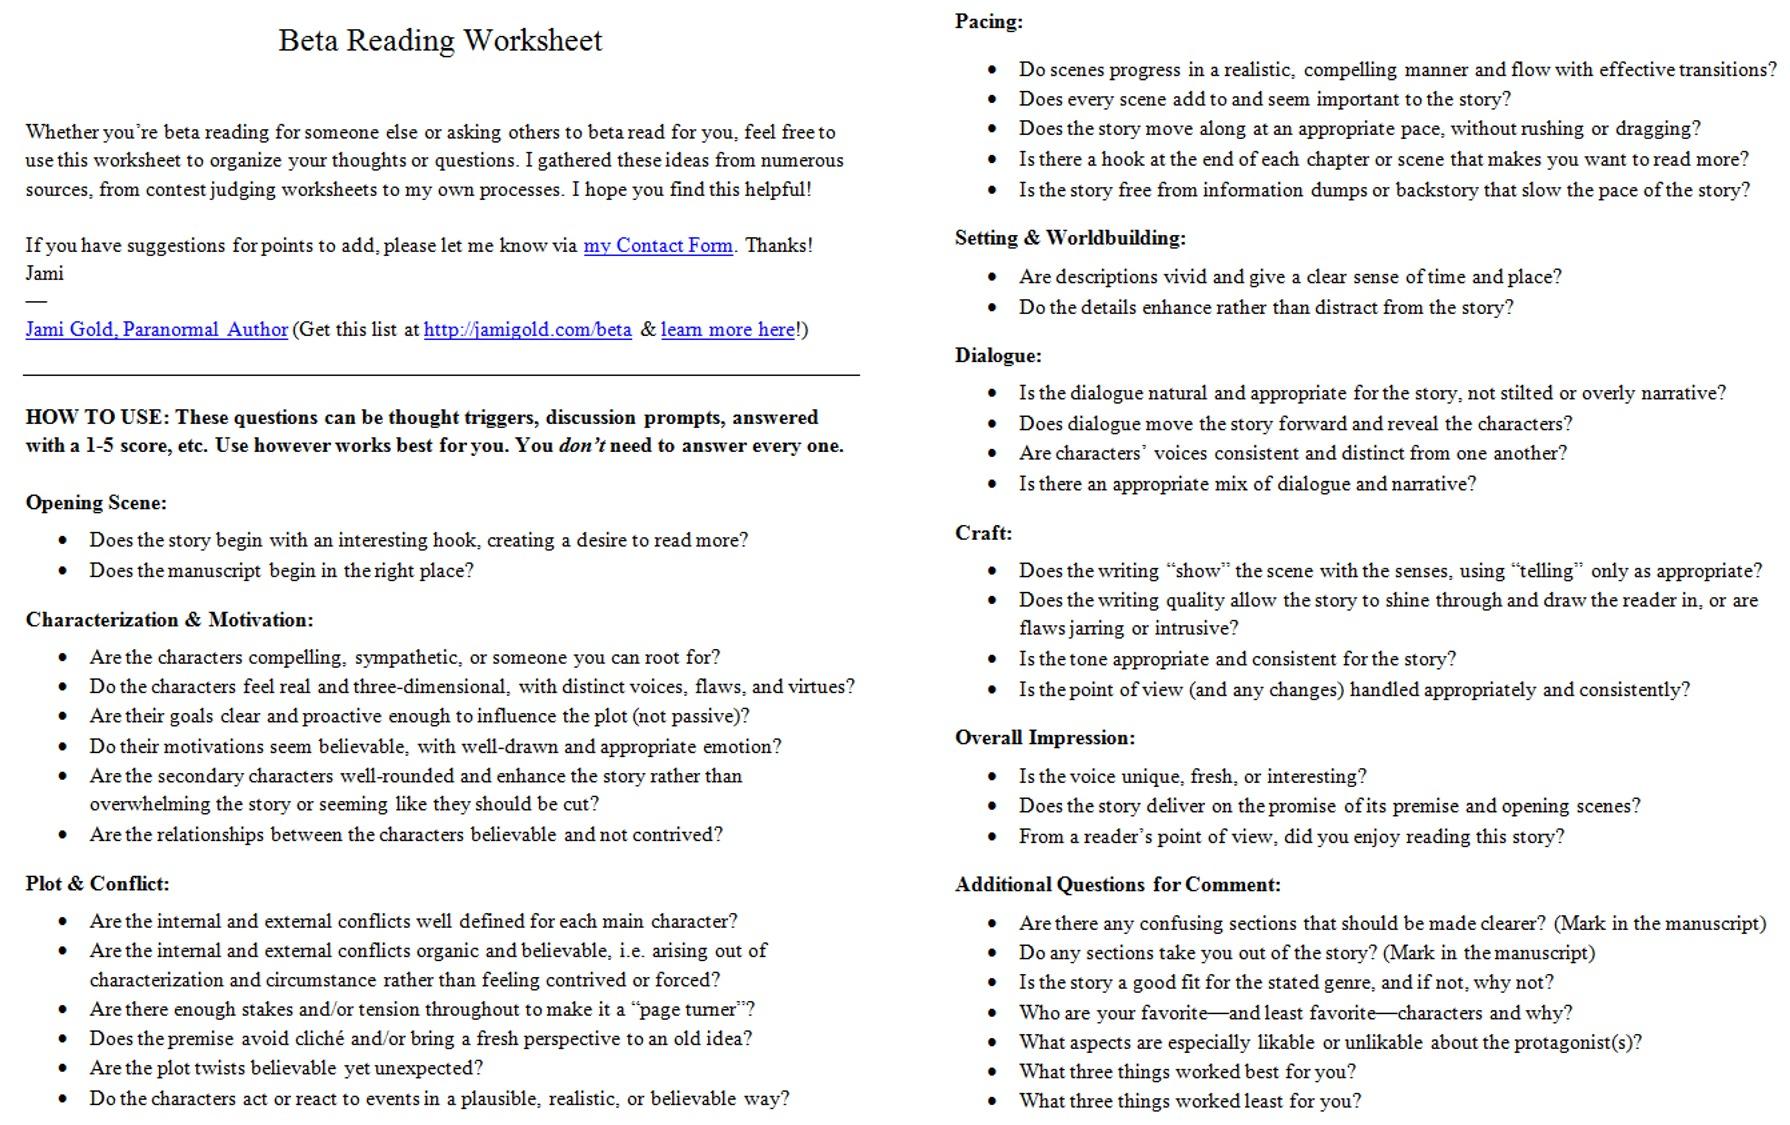 Weirdmailus  Pleasing Worksheets For Writers  Jami Gold Paranormal Author With Entrancing Screen Shot Of The Twopage Beta Reading Worksheet With Beauteous Multiplication Of Mixed Numbers Worksheet Also Greater Than Worksheet In Addition Free Worksheets On Verbs And Single Digit Addition And Subtraction Worksheet As Well As Math In Chemistry Worksheet Additionally Mode Median Mean And Range Worksheets From Jamigoldcom With Weirdmailus  Entrancing Worksheets For Writers  Jami Gold Paranormal Author With Beauteous Screen Shot Of The Twopage Beta Reading Worksheet And Pleasing Multiplication Of Mixed Numbers Worksheet Also Greater Than Worksheet In Addition Free Worksheets On Verbs From Jamigoldcom